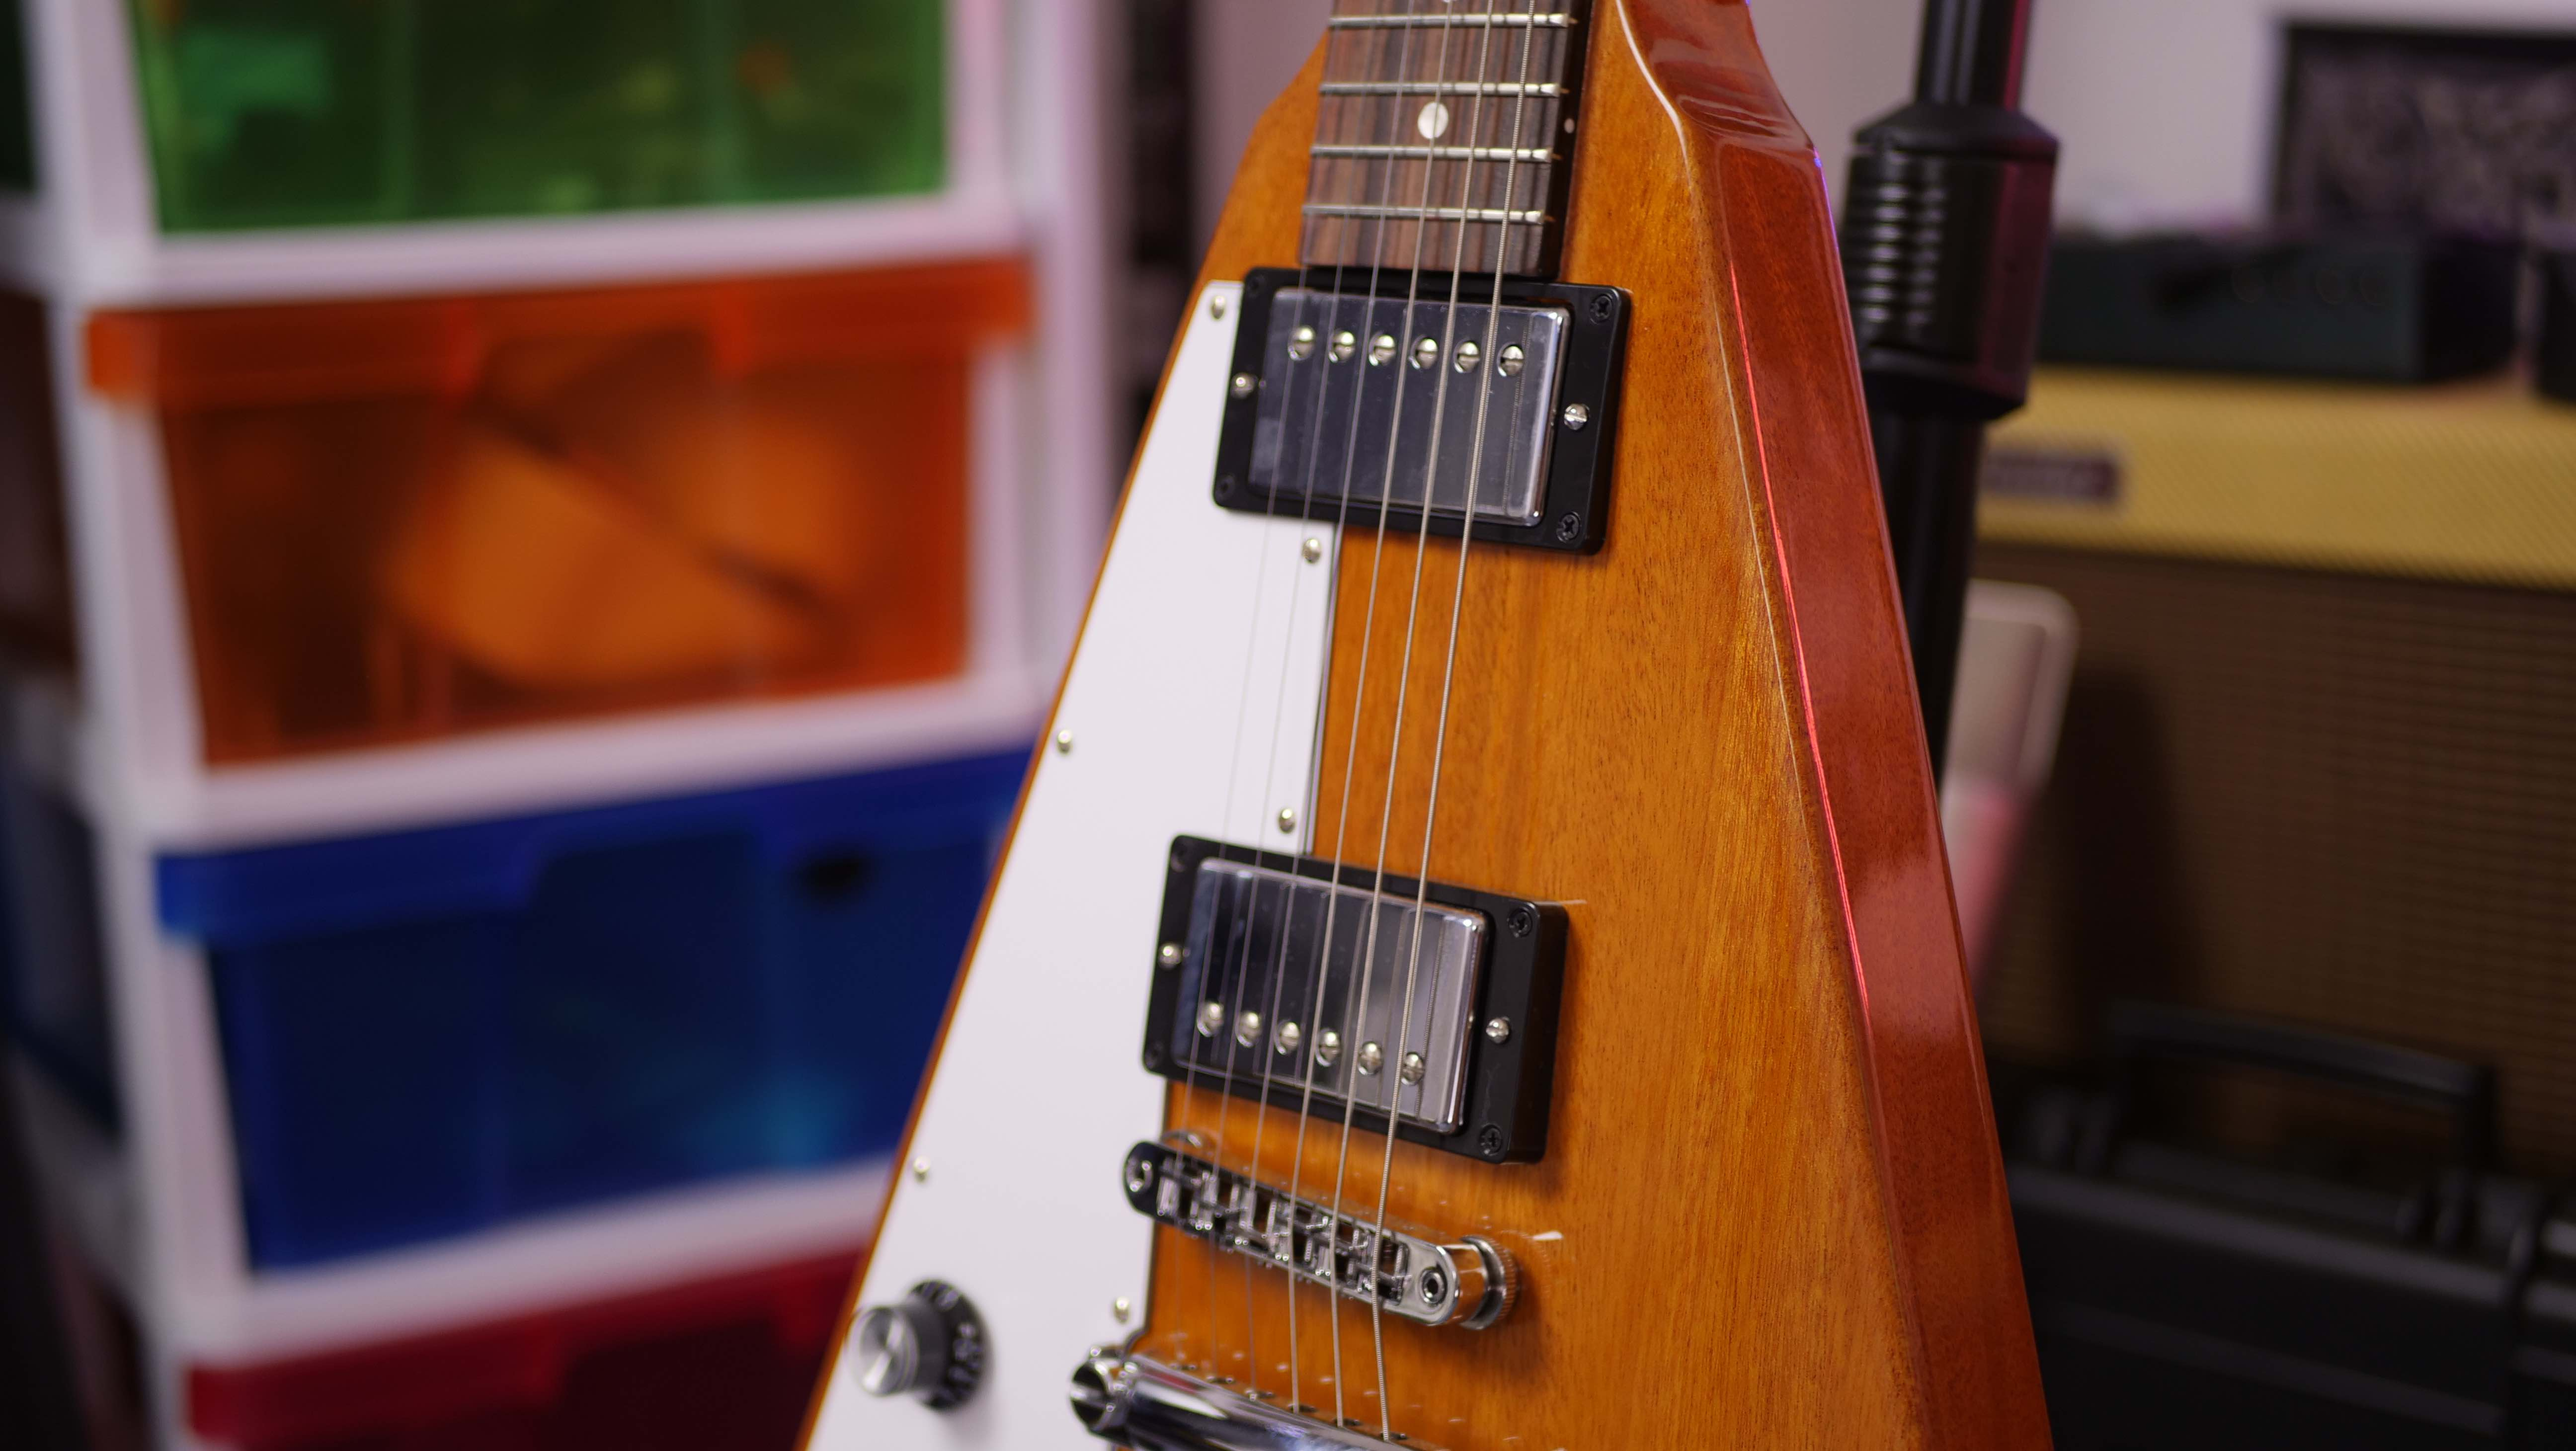 My 2019 Gibson Flying V Review - Guitar Gear Help Guides